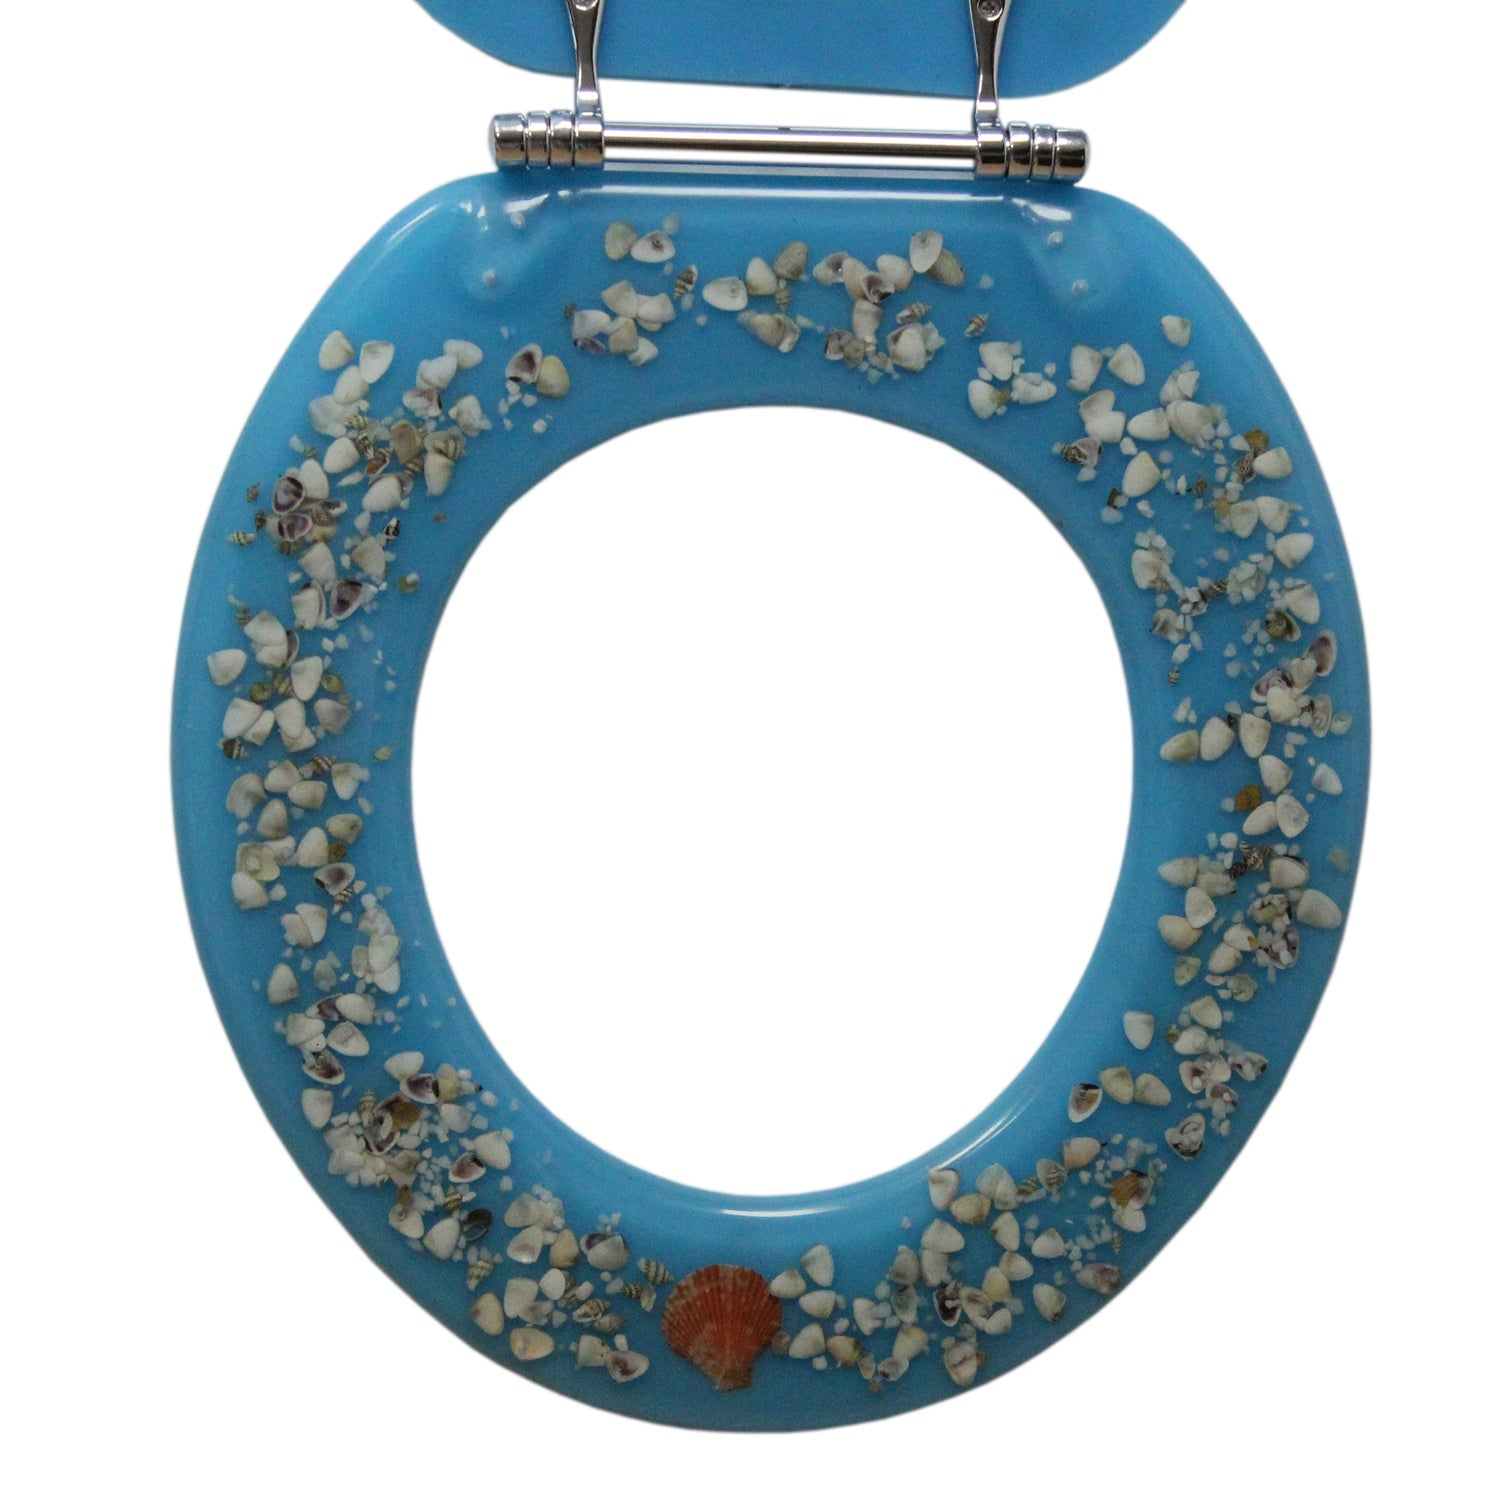 Trimmer Polyresin Toilet Seat Overstock 3450298